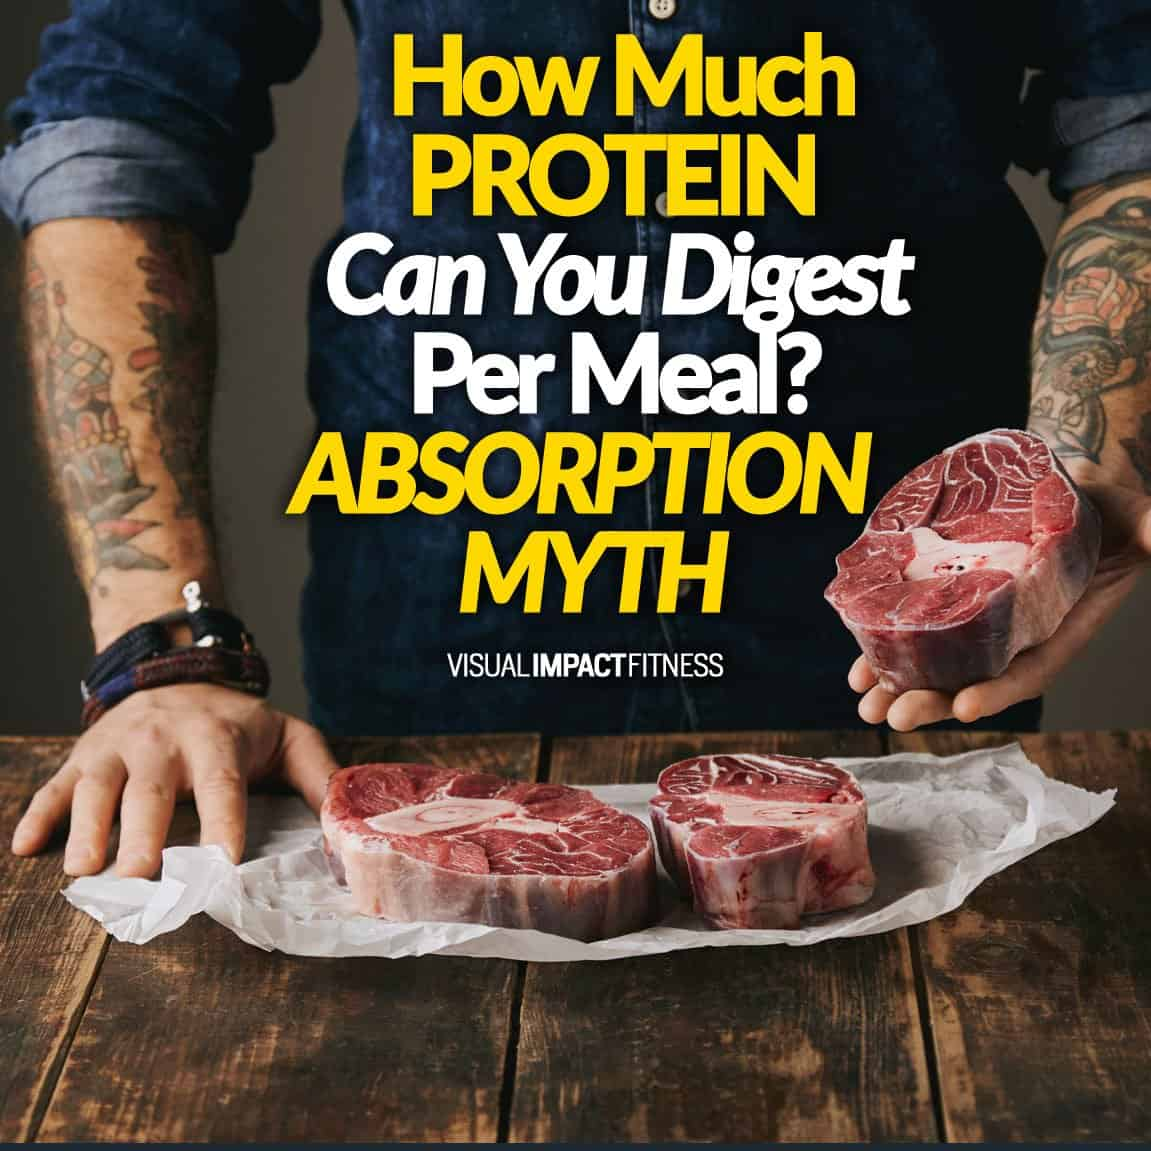 How Much Protein Can You Digest Per Meal (ABSORPTION MYTH)